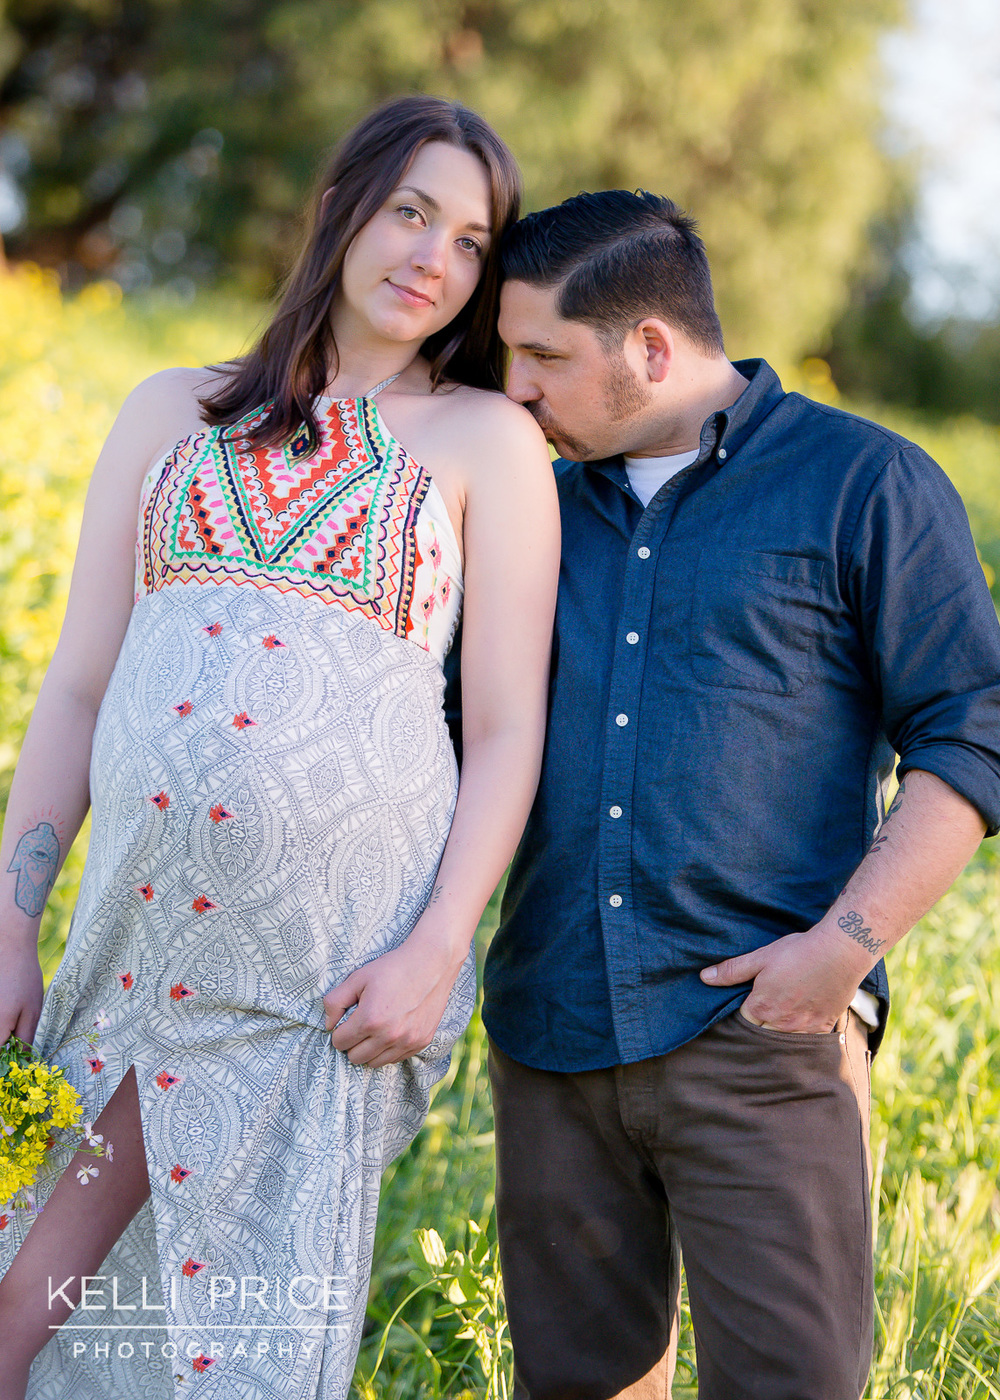 JohnstonMaternity17KelliPricePhotography_WalnutCreekCalifornia.jpg